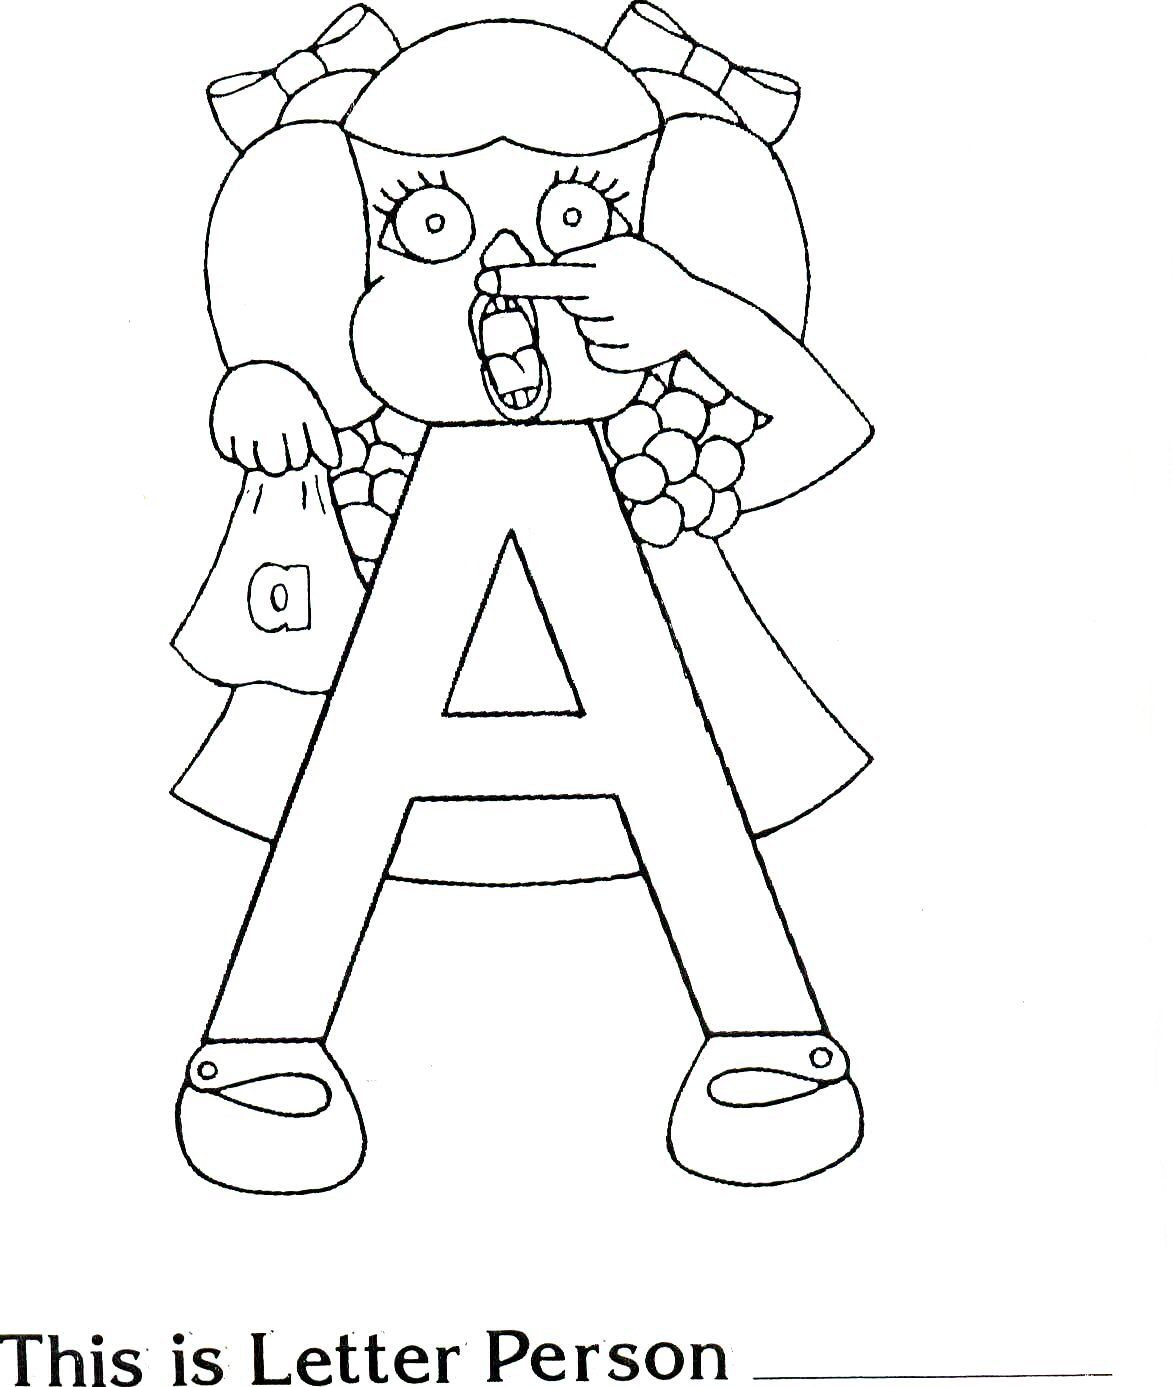 Brilliant Beginnings Preschool: Letter Person A Coloring Pages and ...